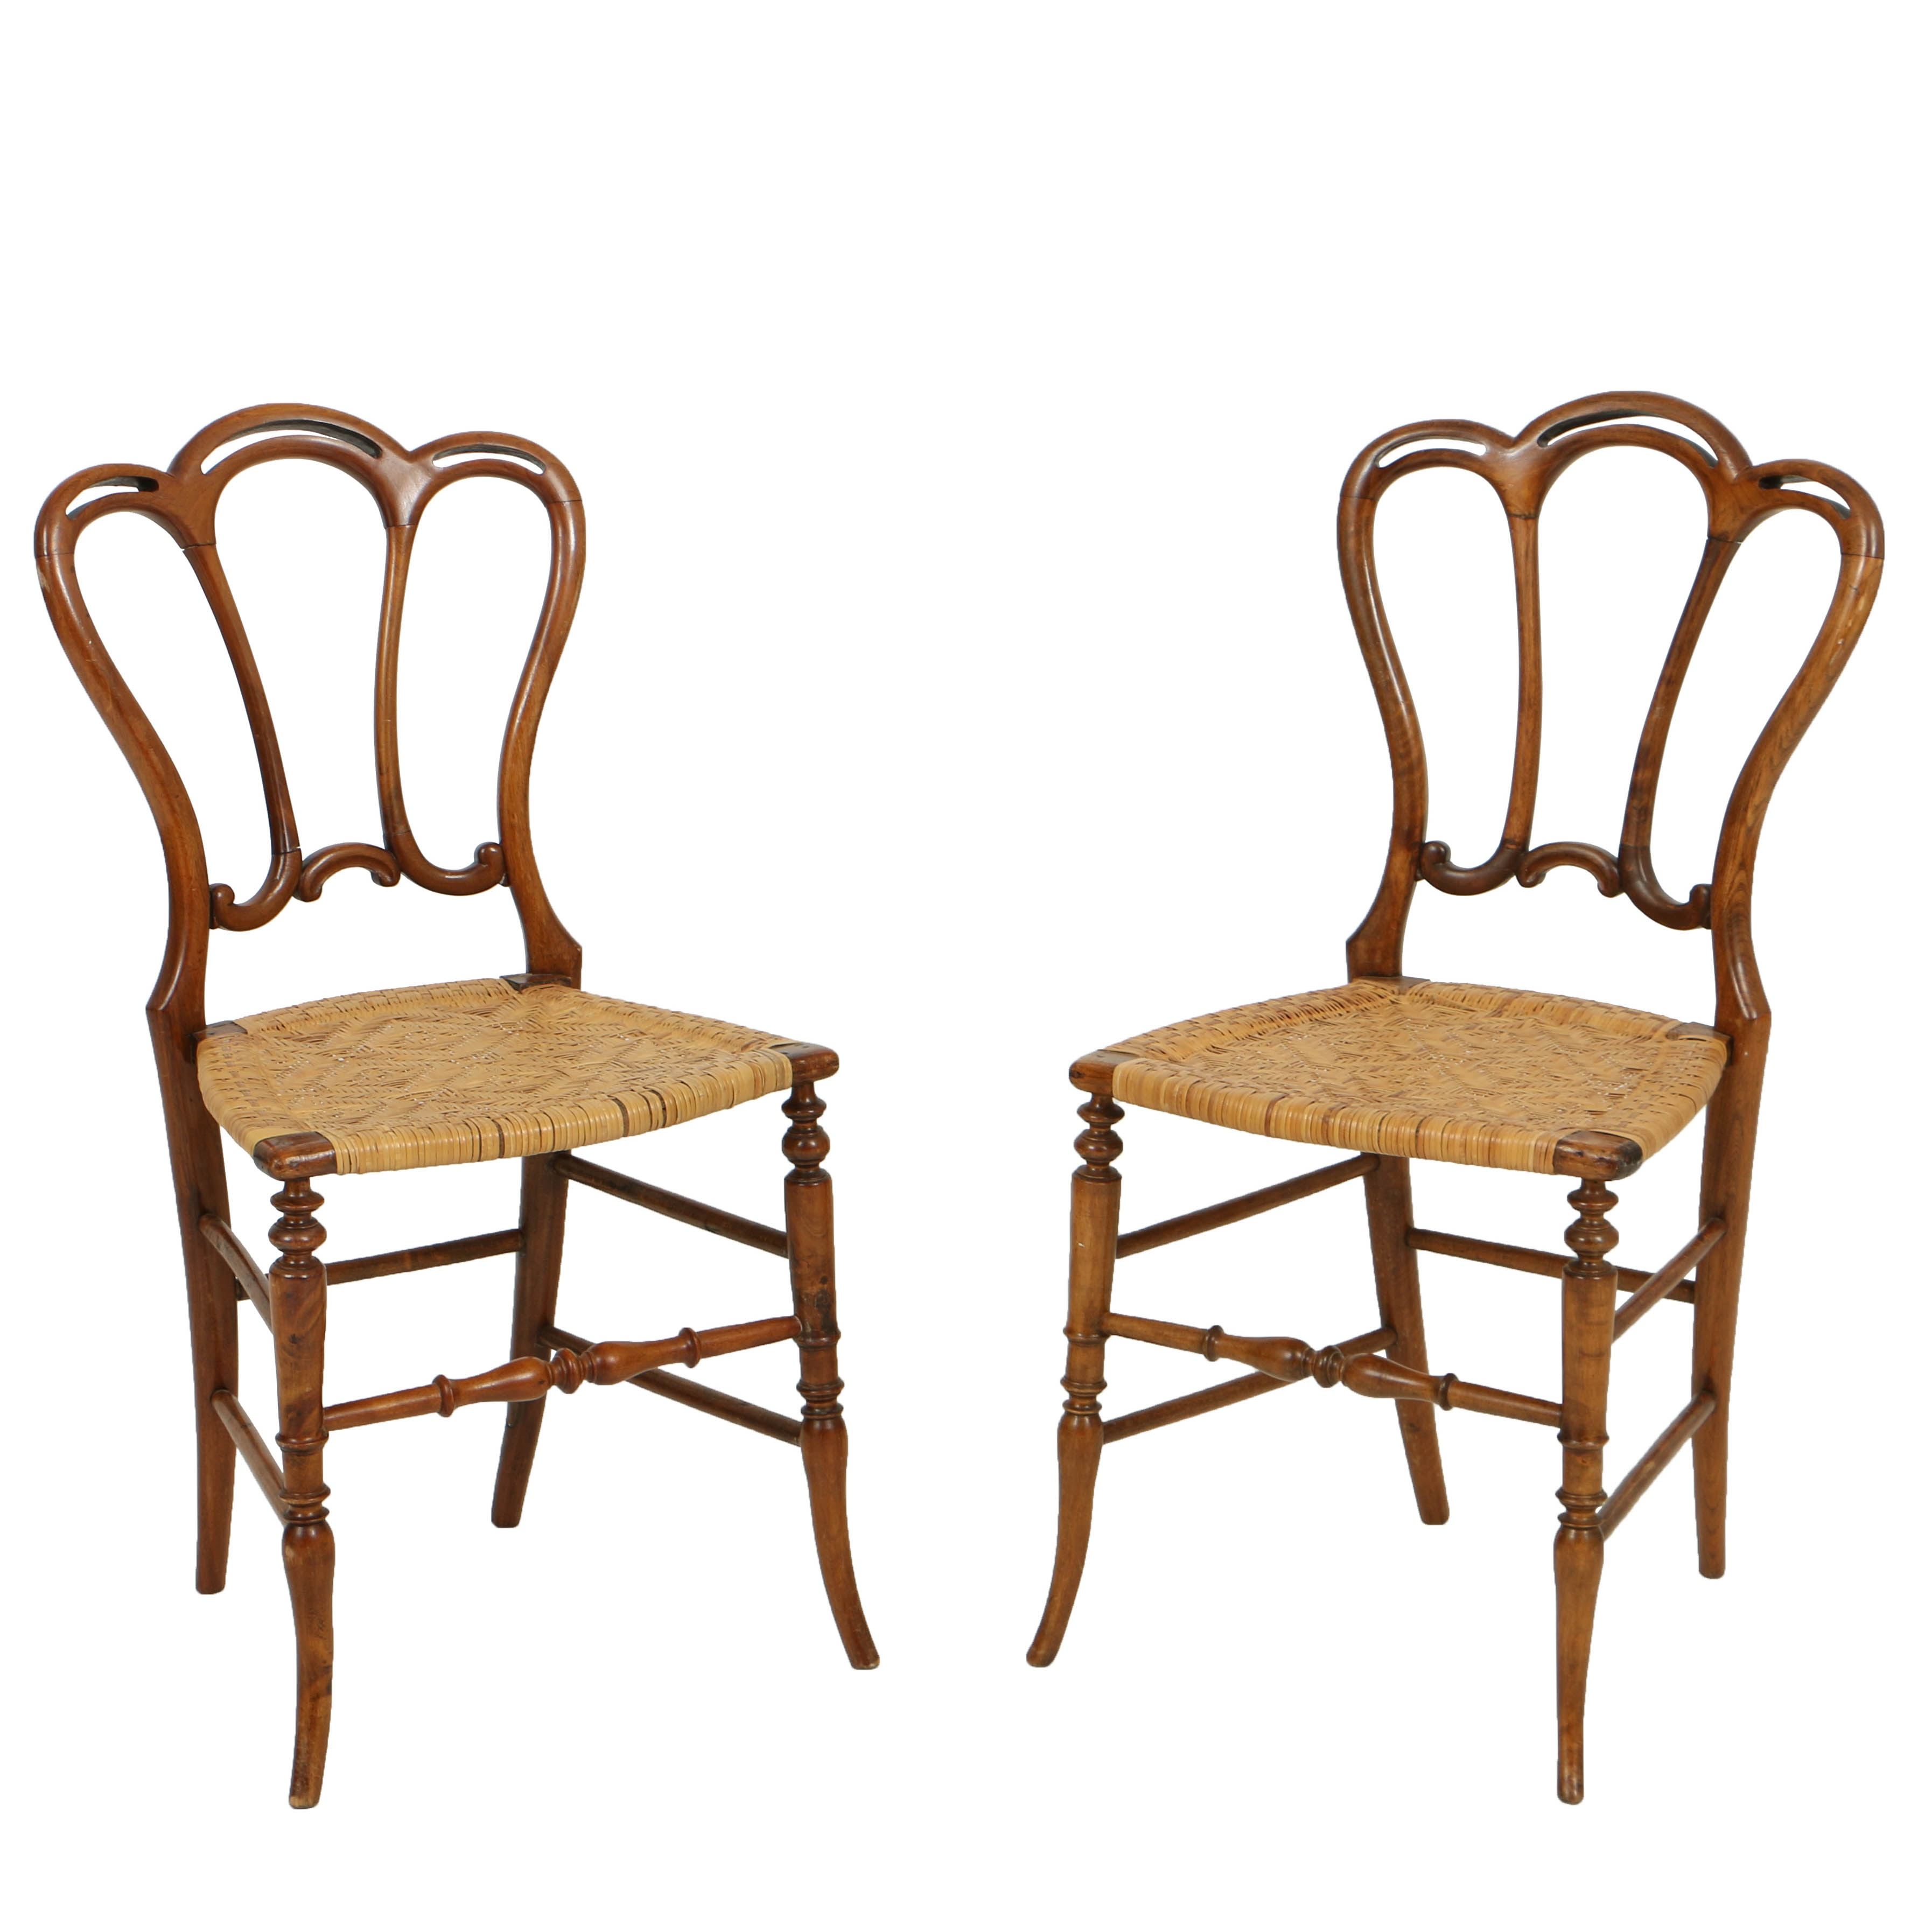 Antique Victorian Provincial Style Birch Side Chairs, Mid 19th Century